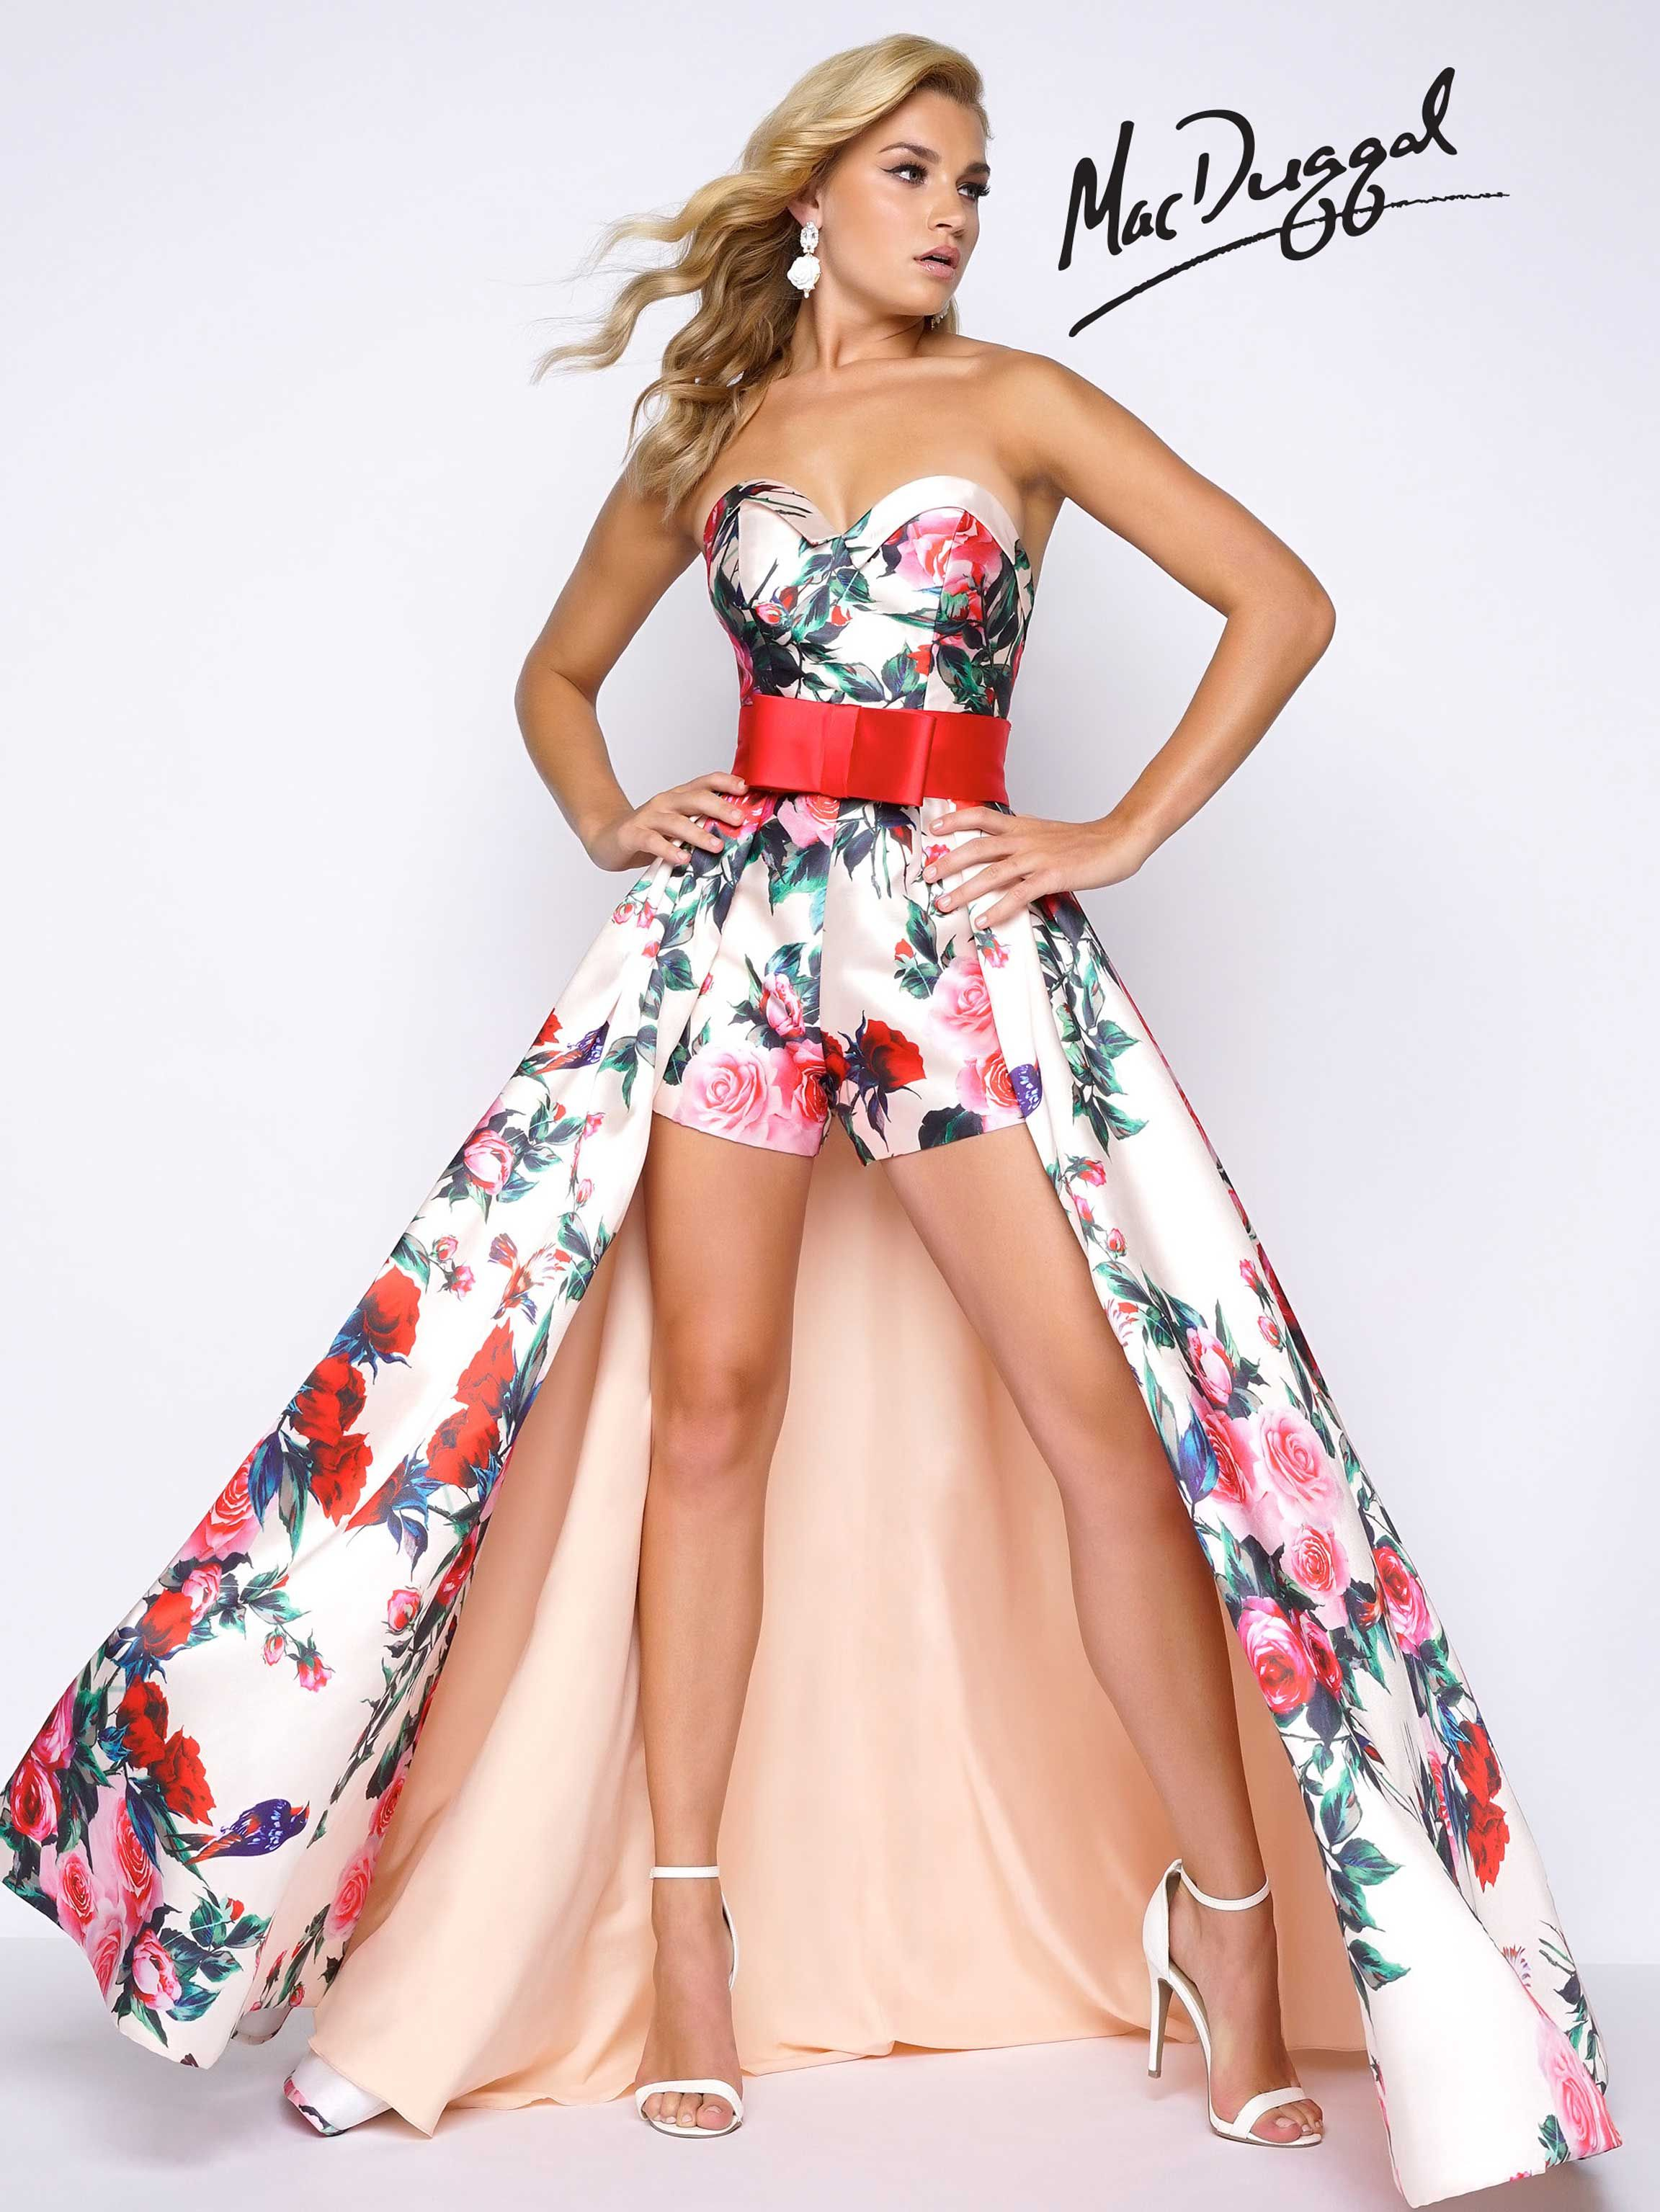 Strapless, floral rose print romper with sweetheart neckline, and detachable overskirt with a bowed waistline.